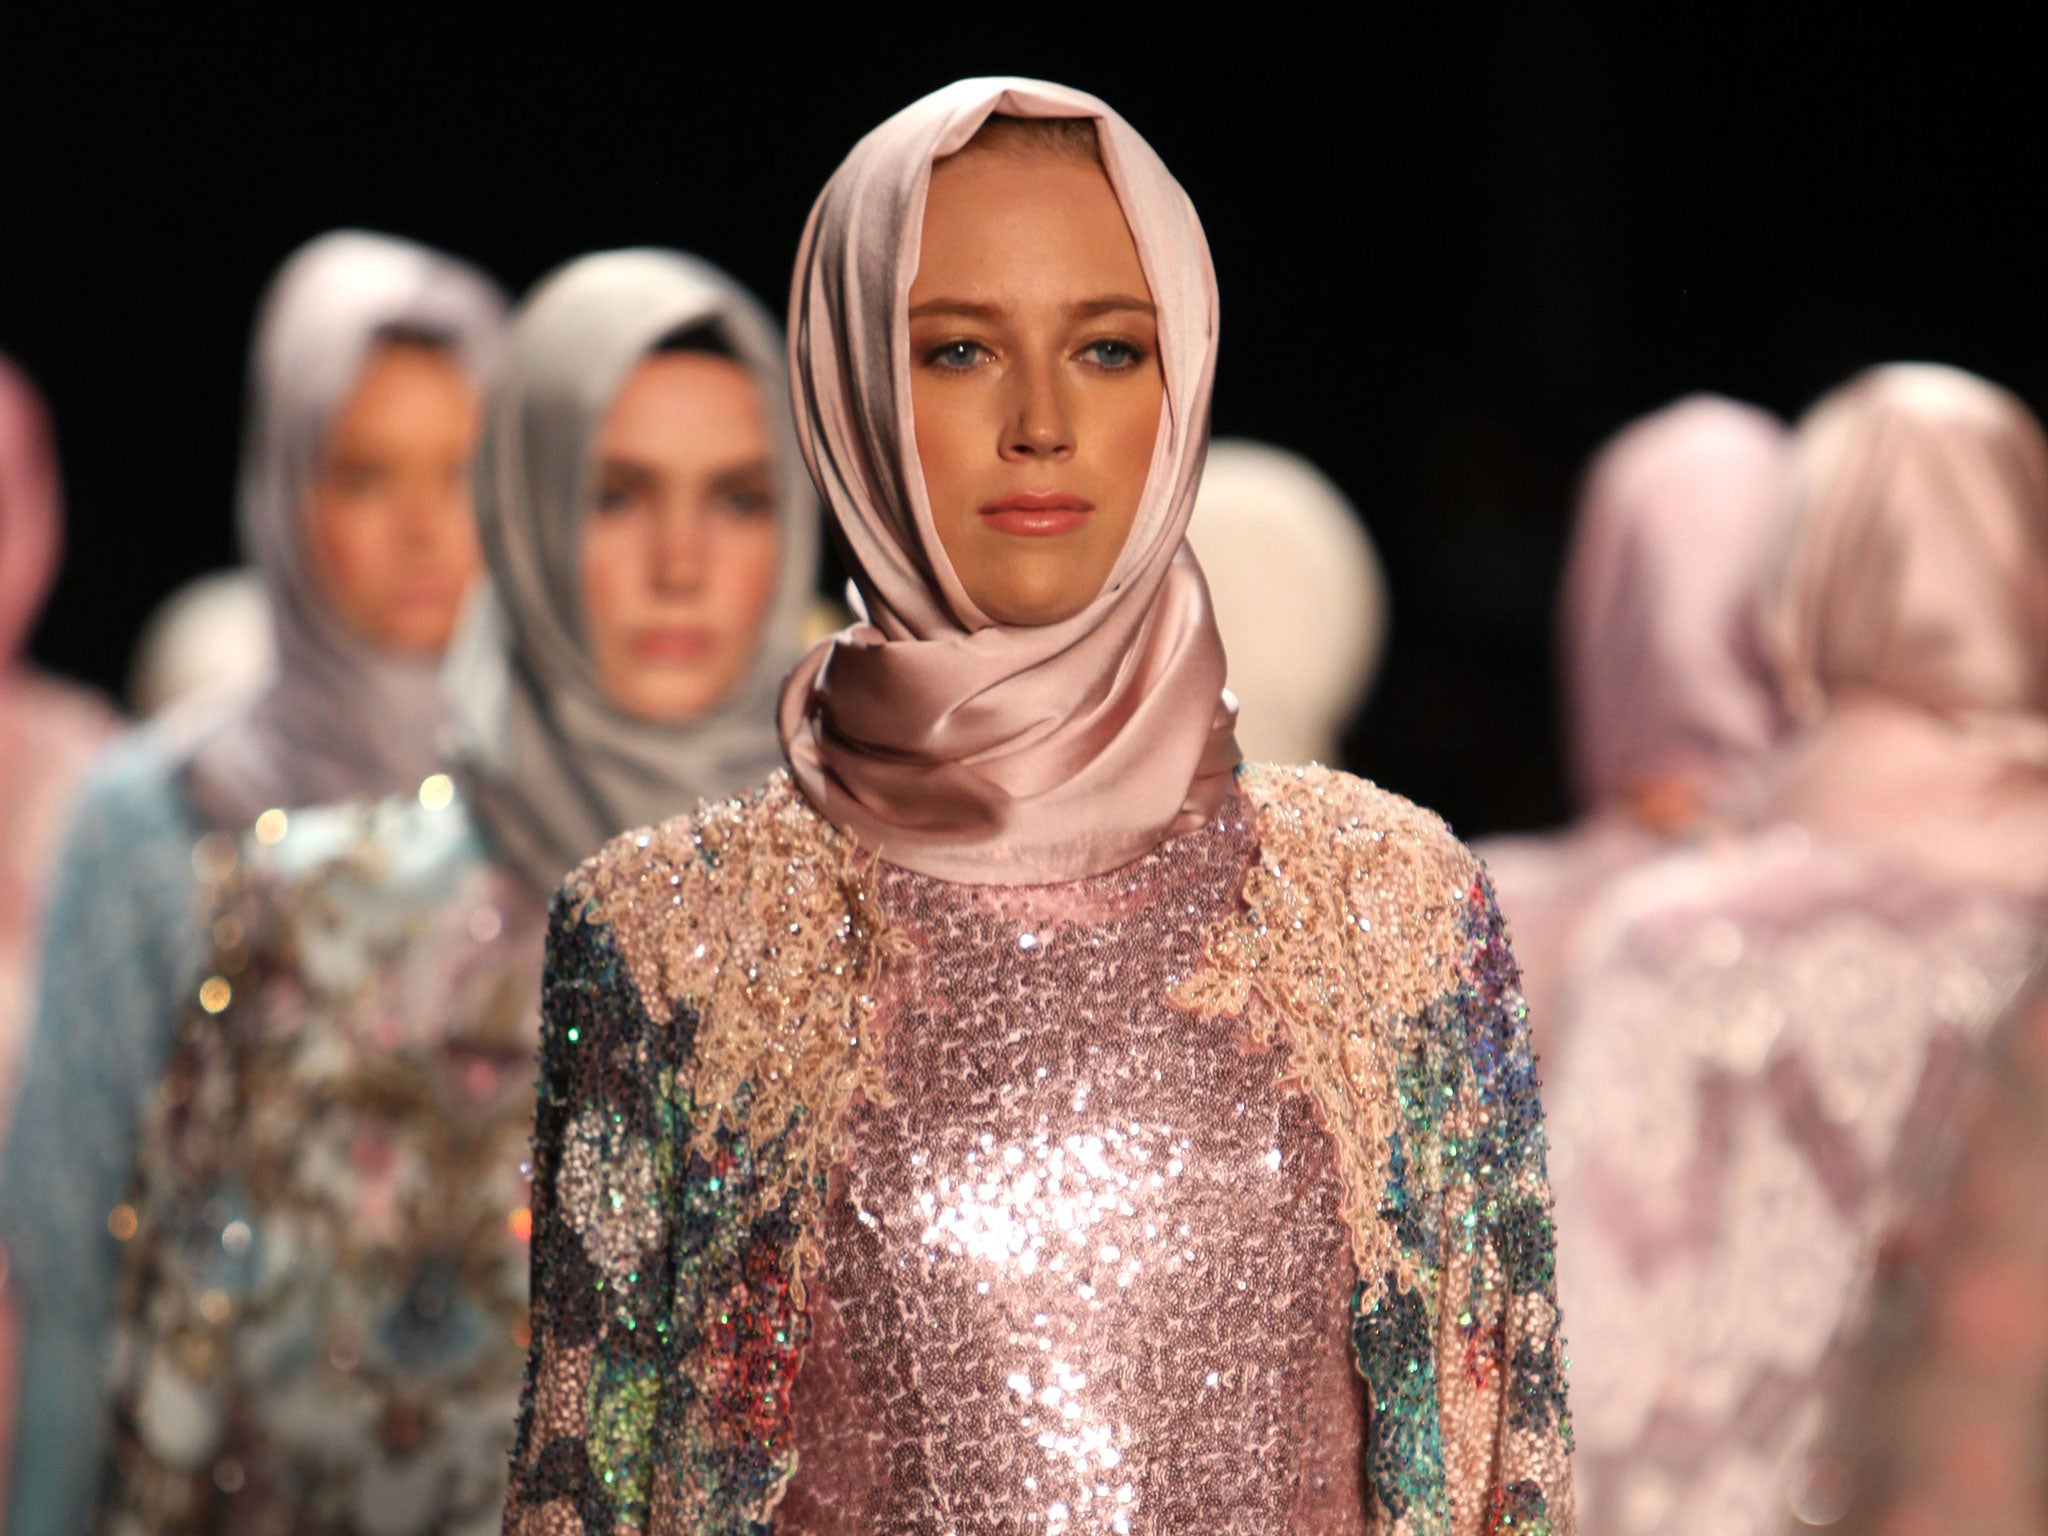 Muslim Fashion Designer Makes History With Hijab Collection At New York Fashion Week The